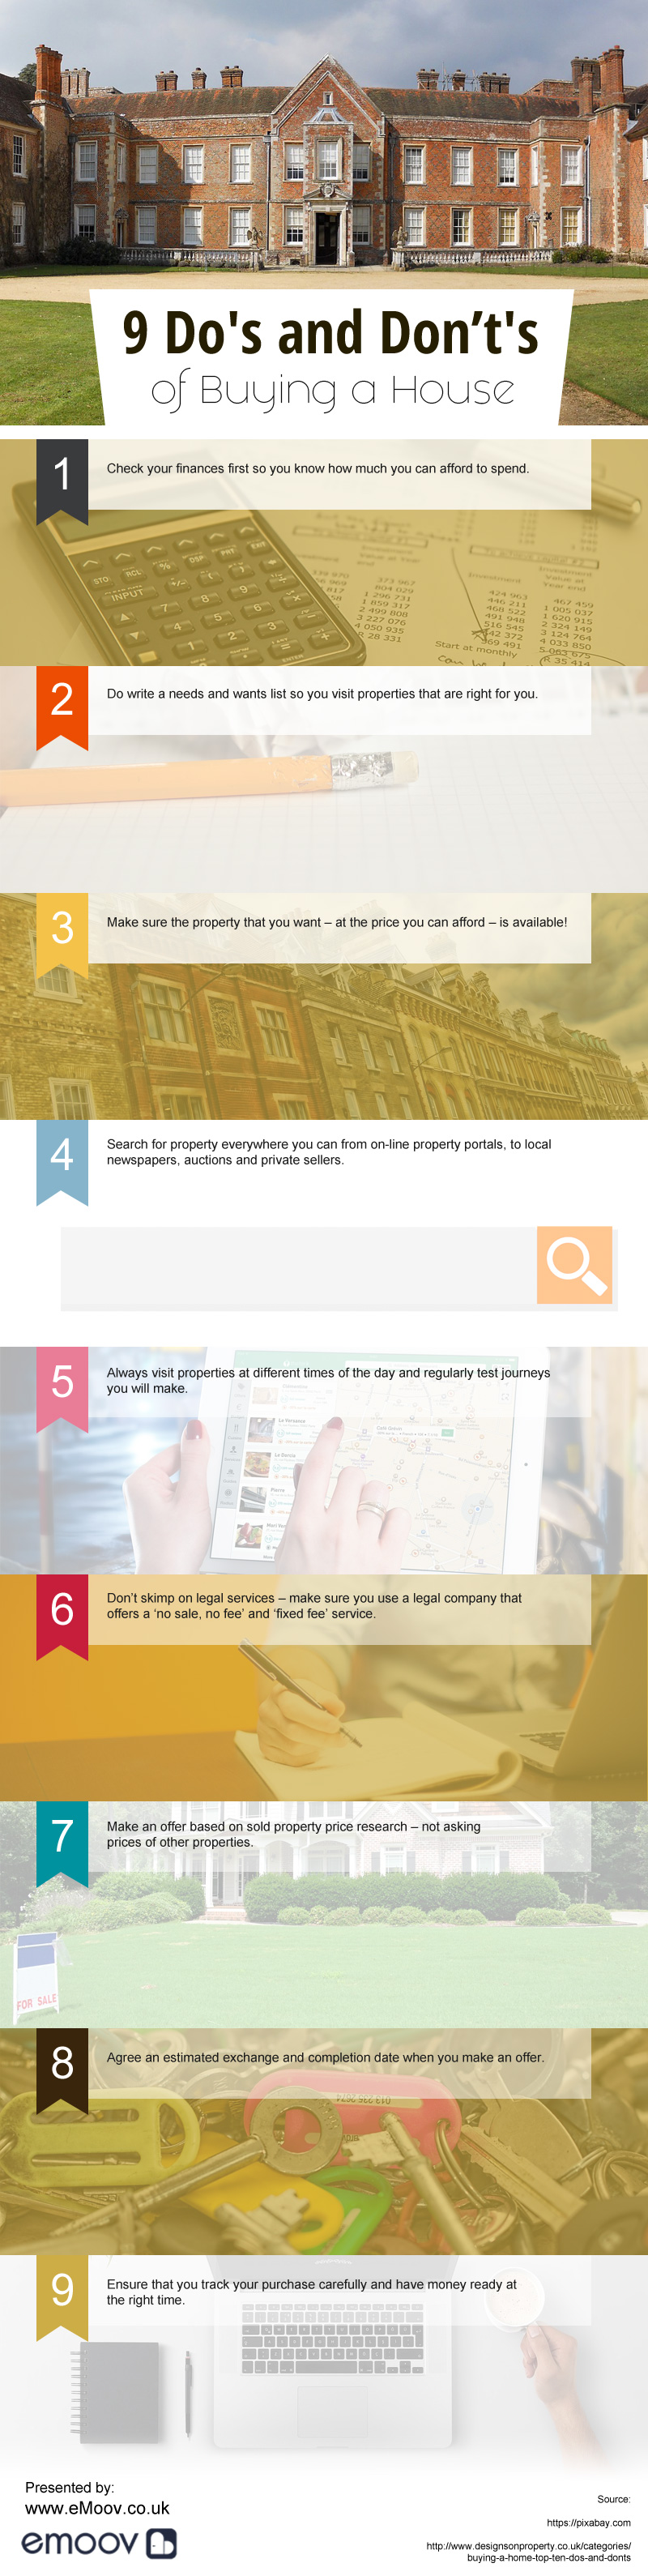 What You Should/Shouldn't Do While Buying A House - Infographic